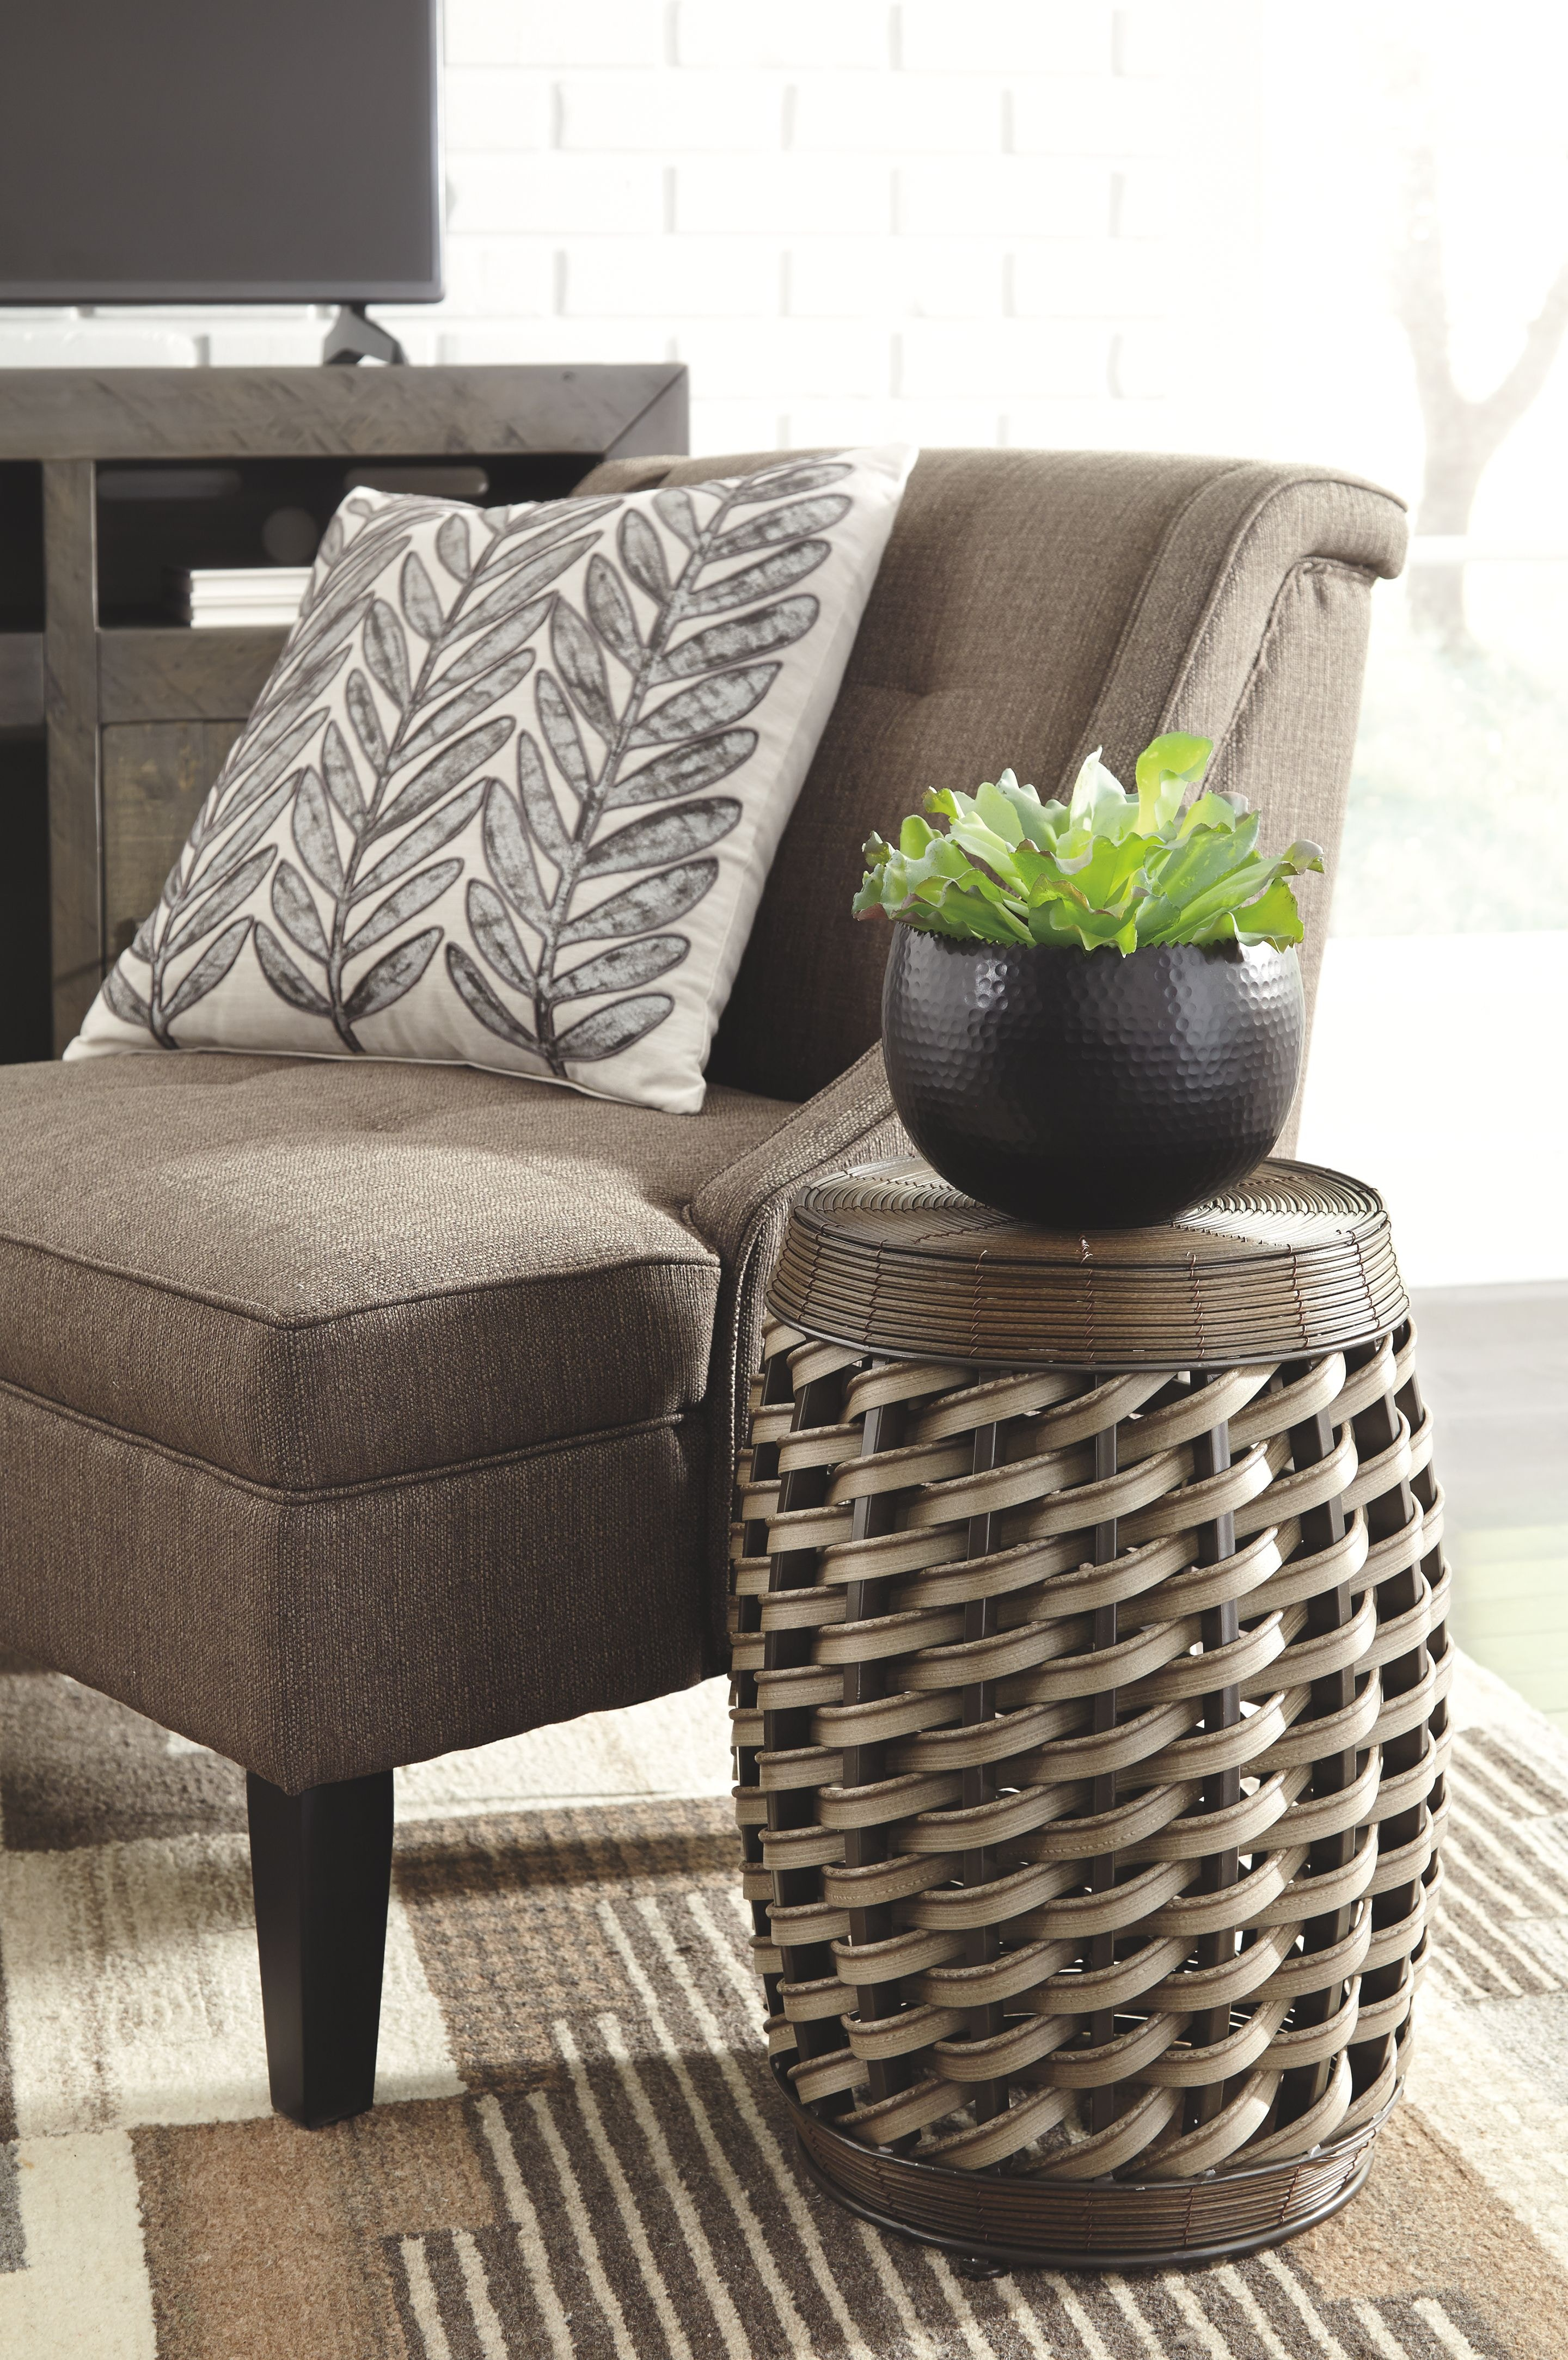 Signature Design By Ashley Living Room Stool At Four States Furniture